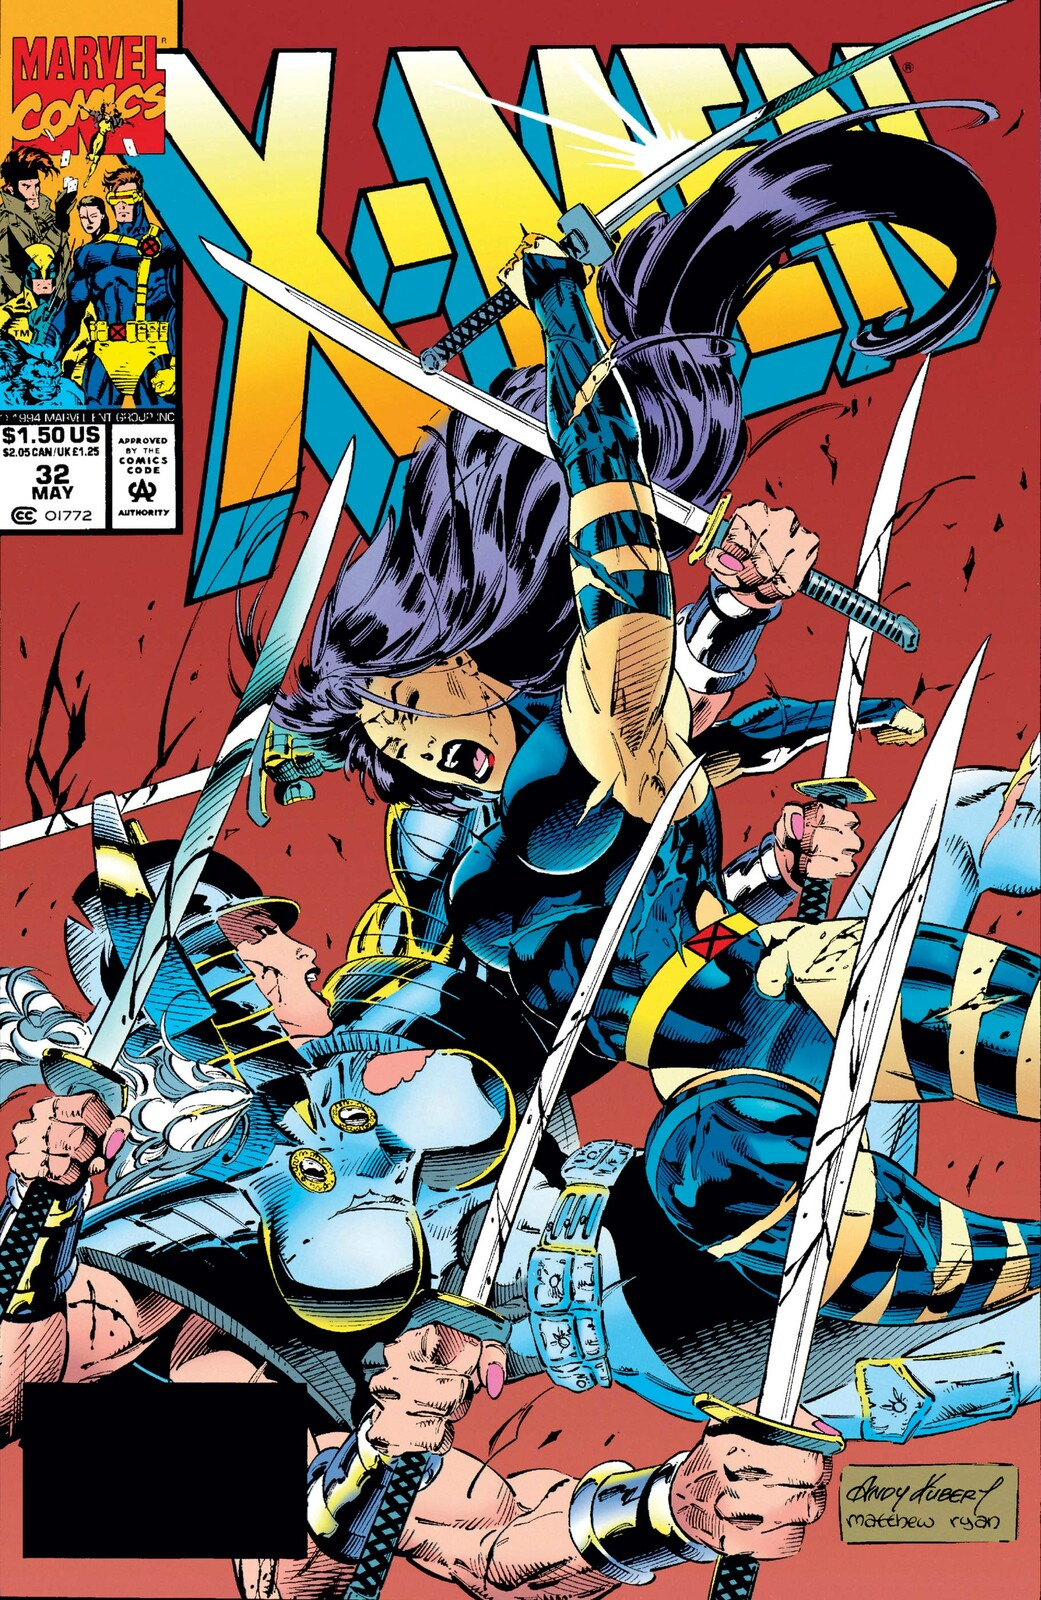 X-Men #32 cover by Andy Kubert